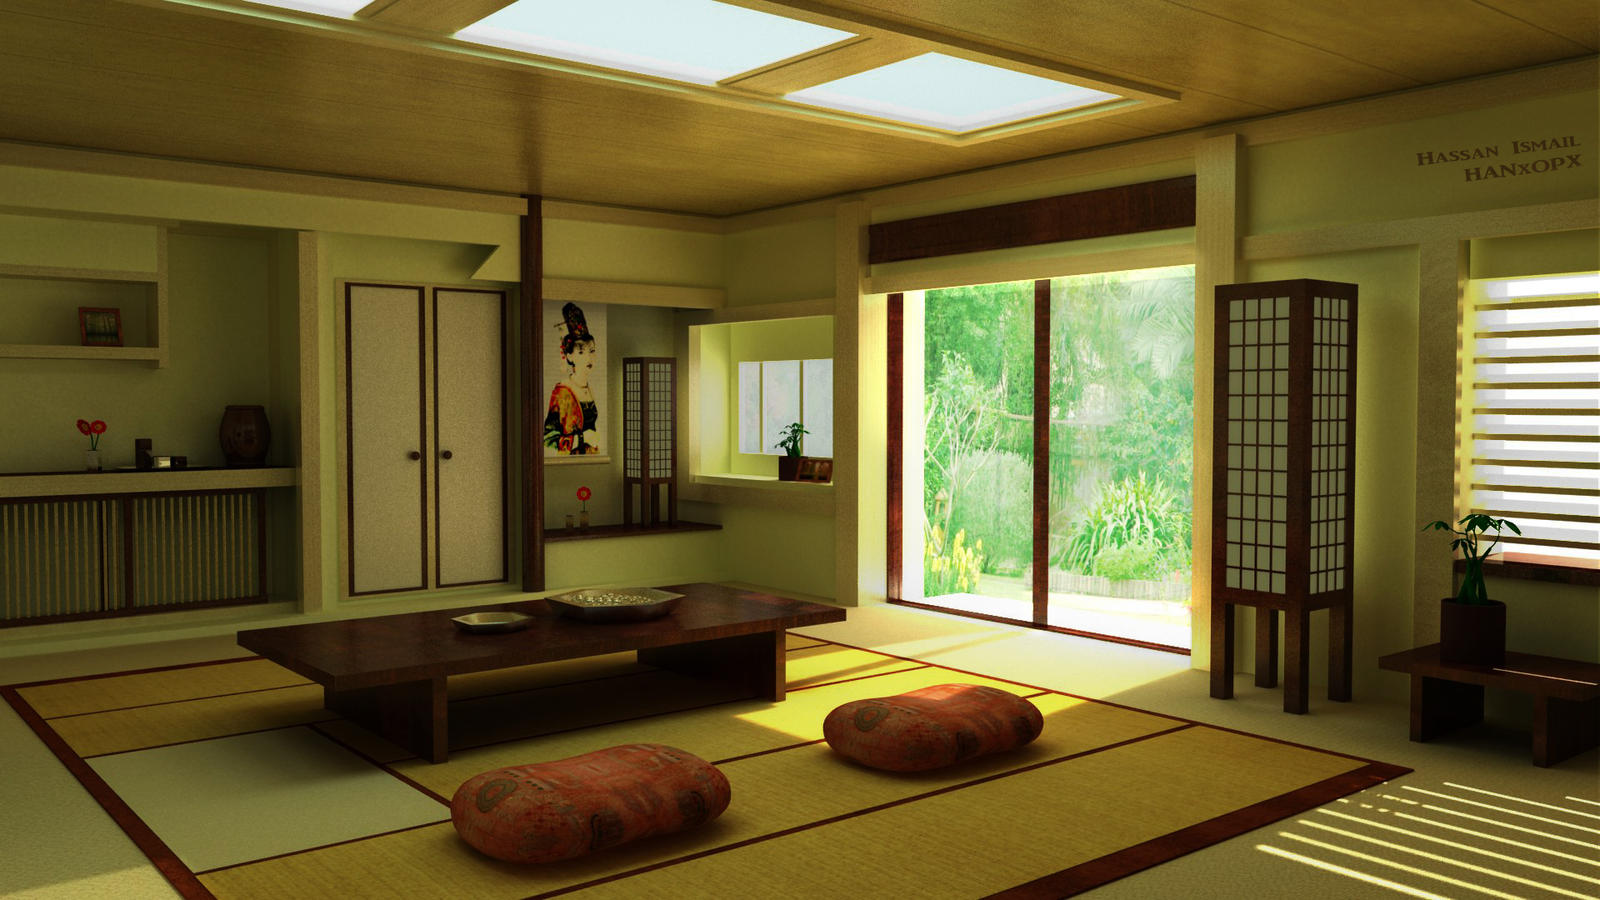 Anime Room Wallpaper House Design Inspiration Architecture Rh Elizadiaries  Com